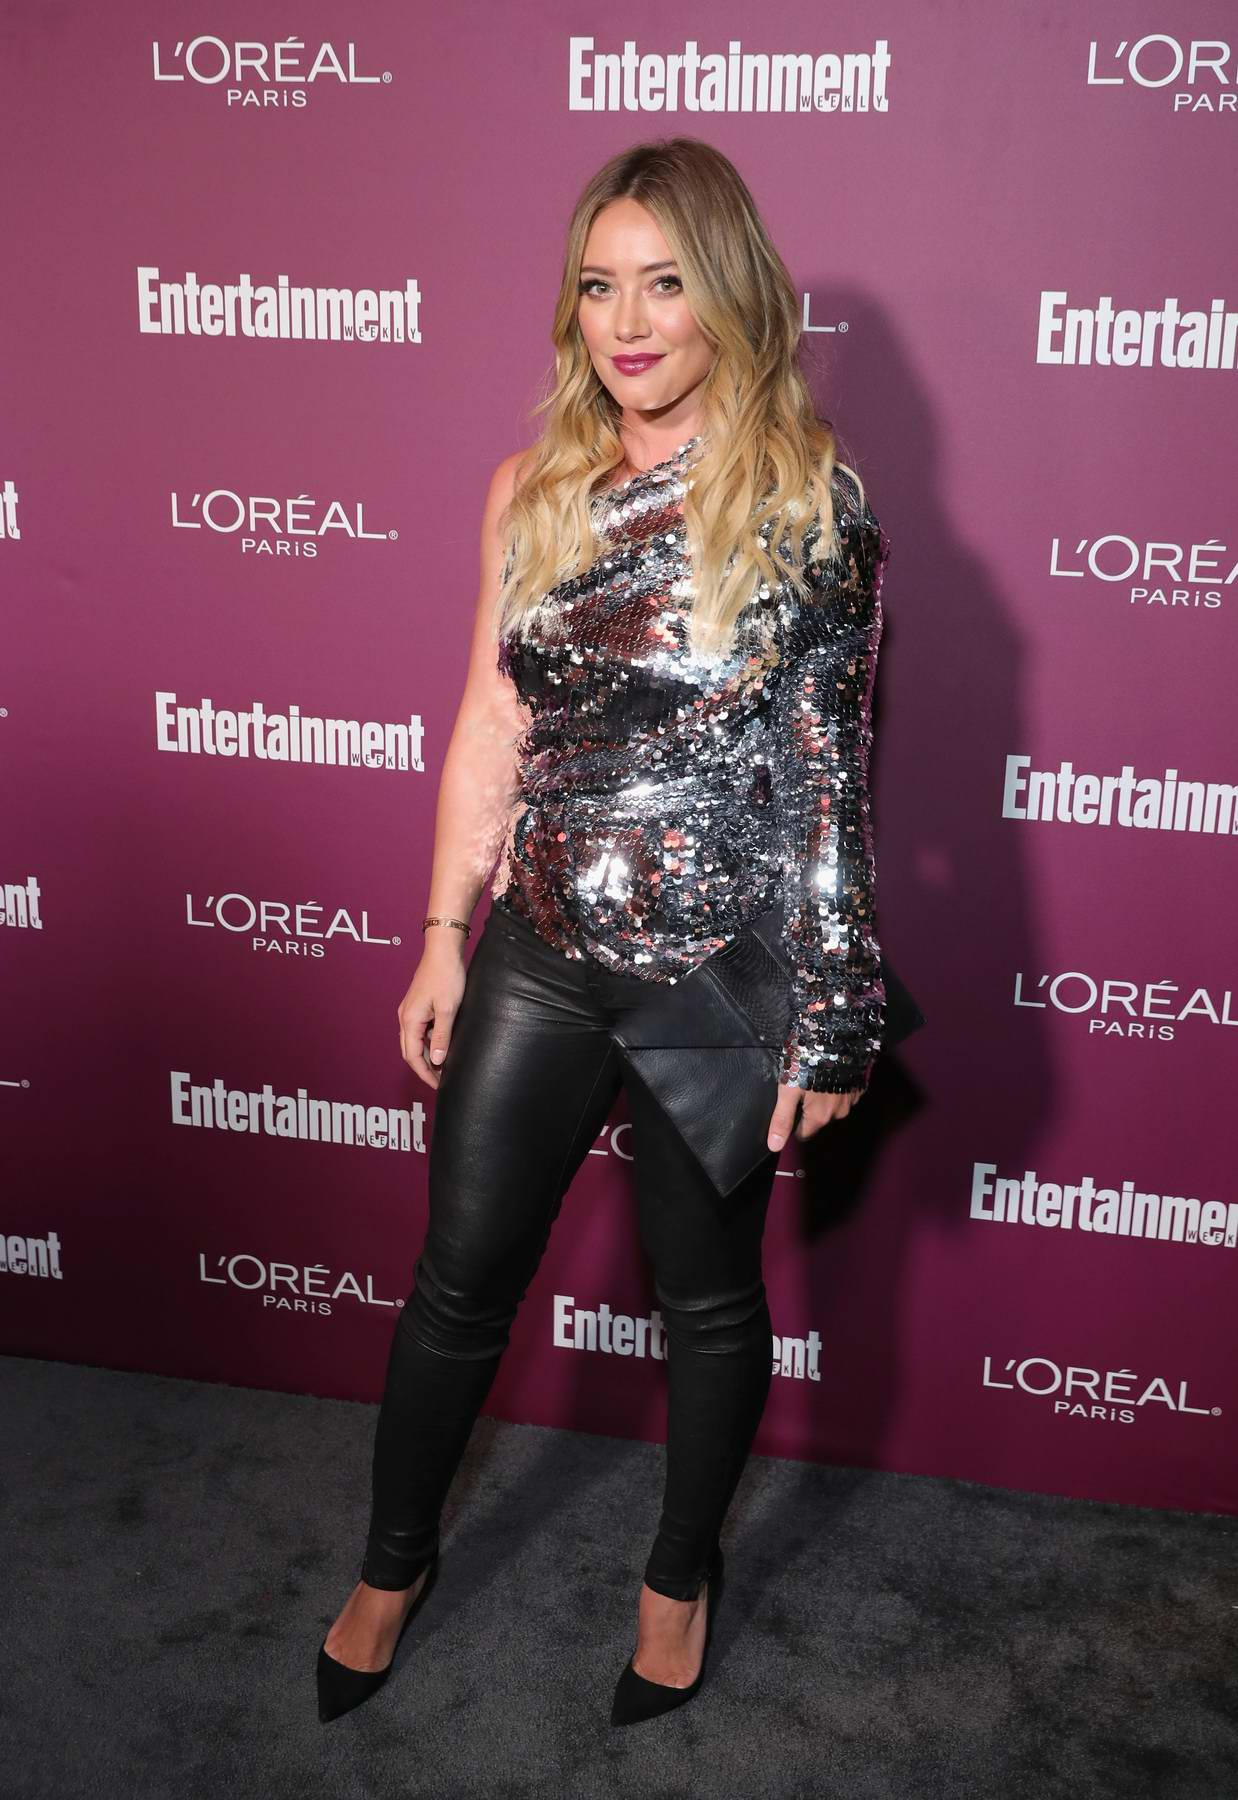 Hilary Duff at 2017 Entertainment Weekly Pre-EMMY party in West Hollywood, Los Angeles